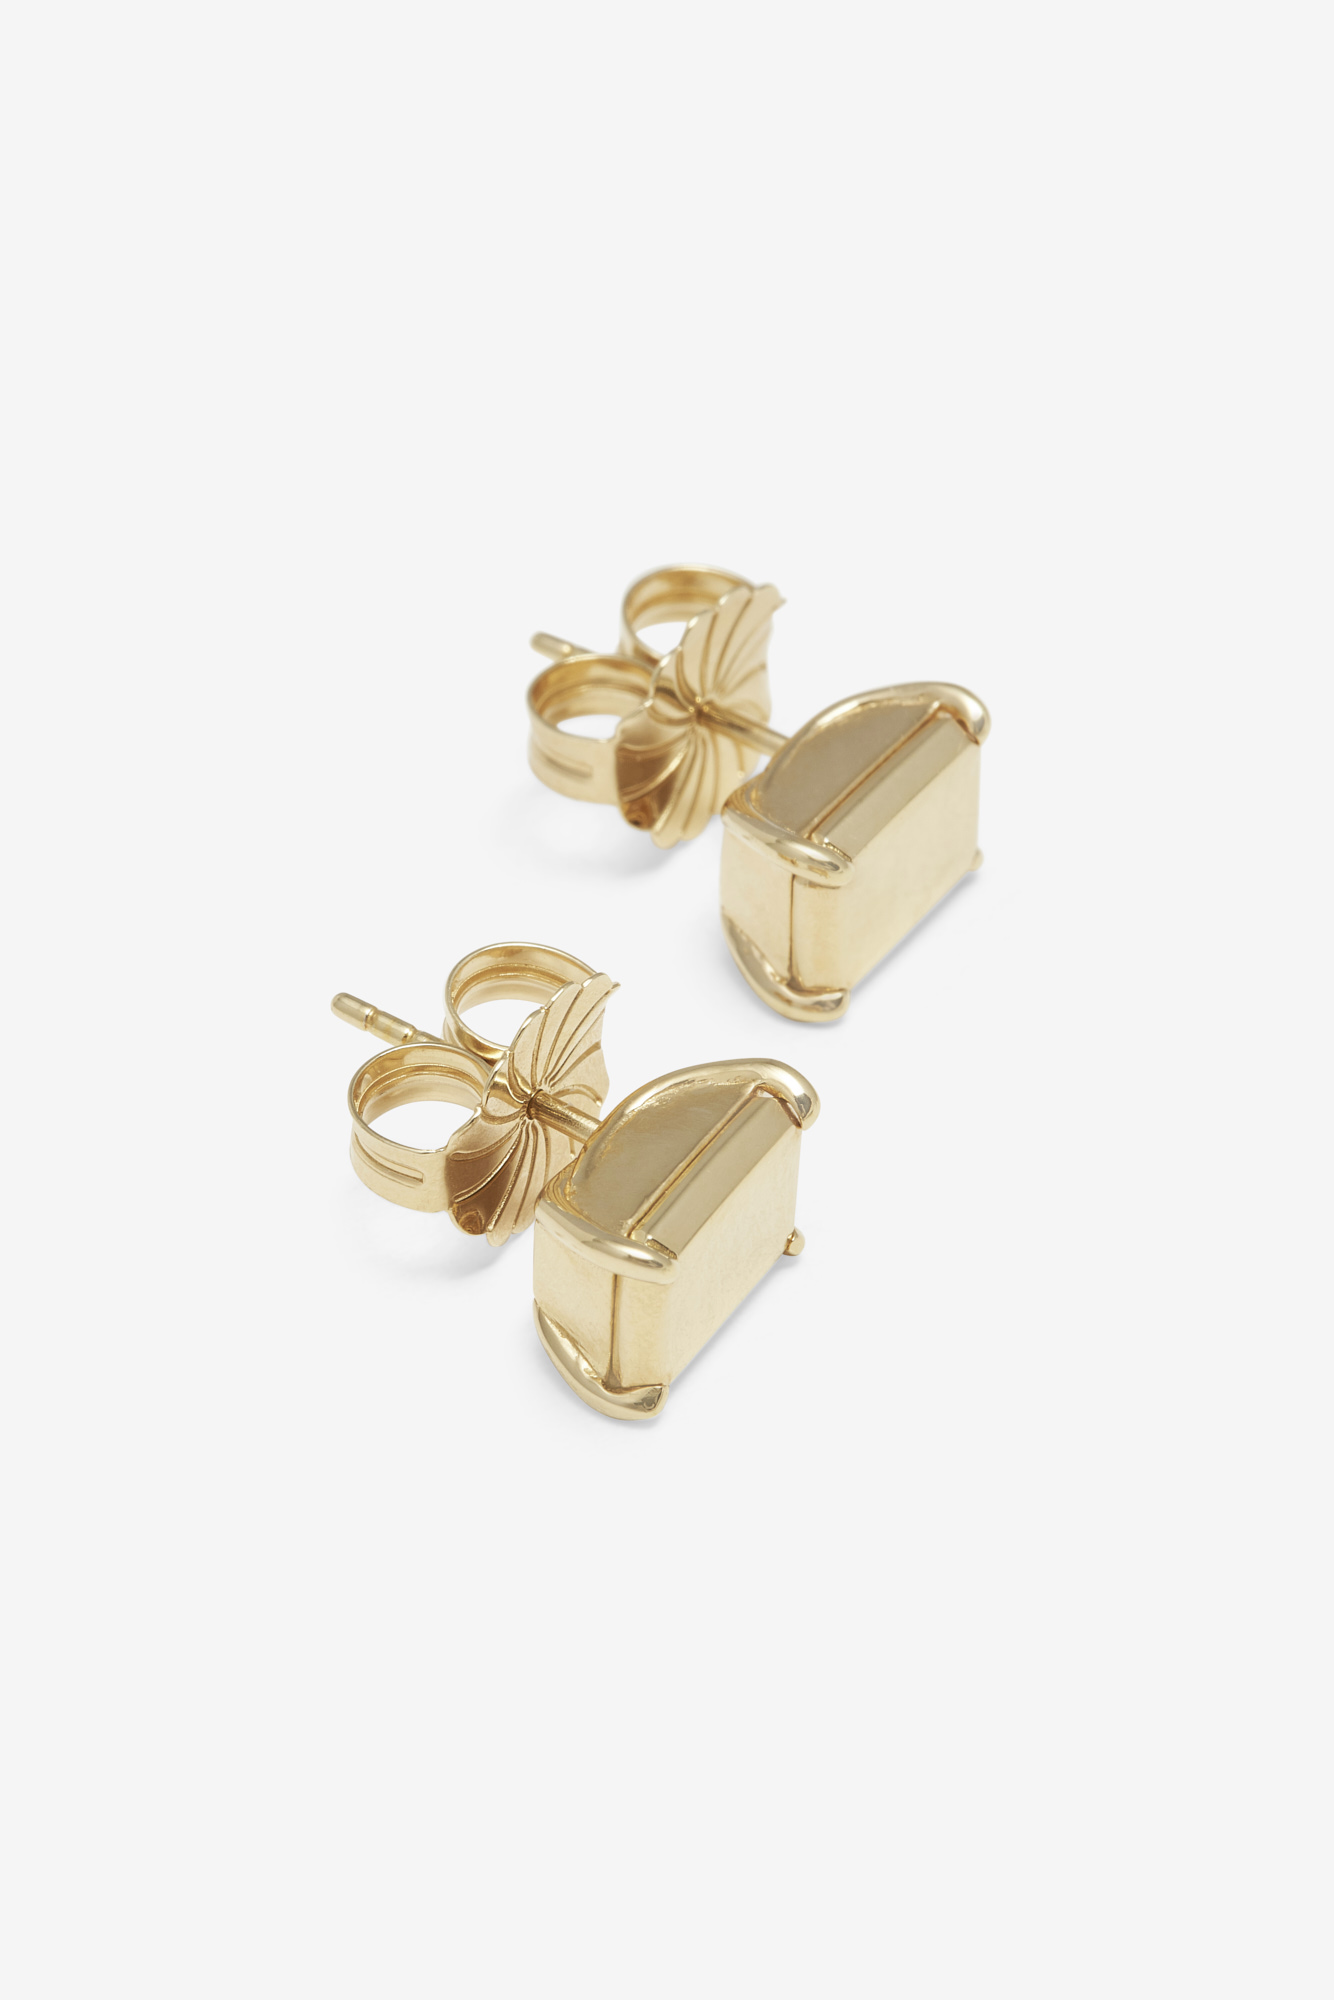 19-03-5-1-019-113-09_Baguette Earring_Gold Plated_04